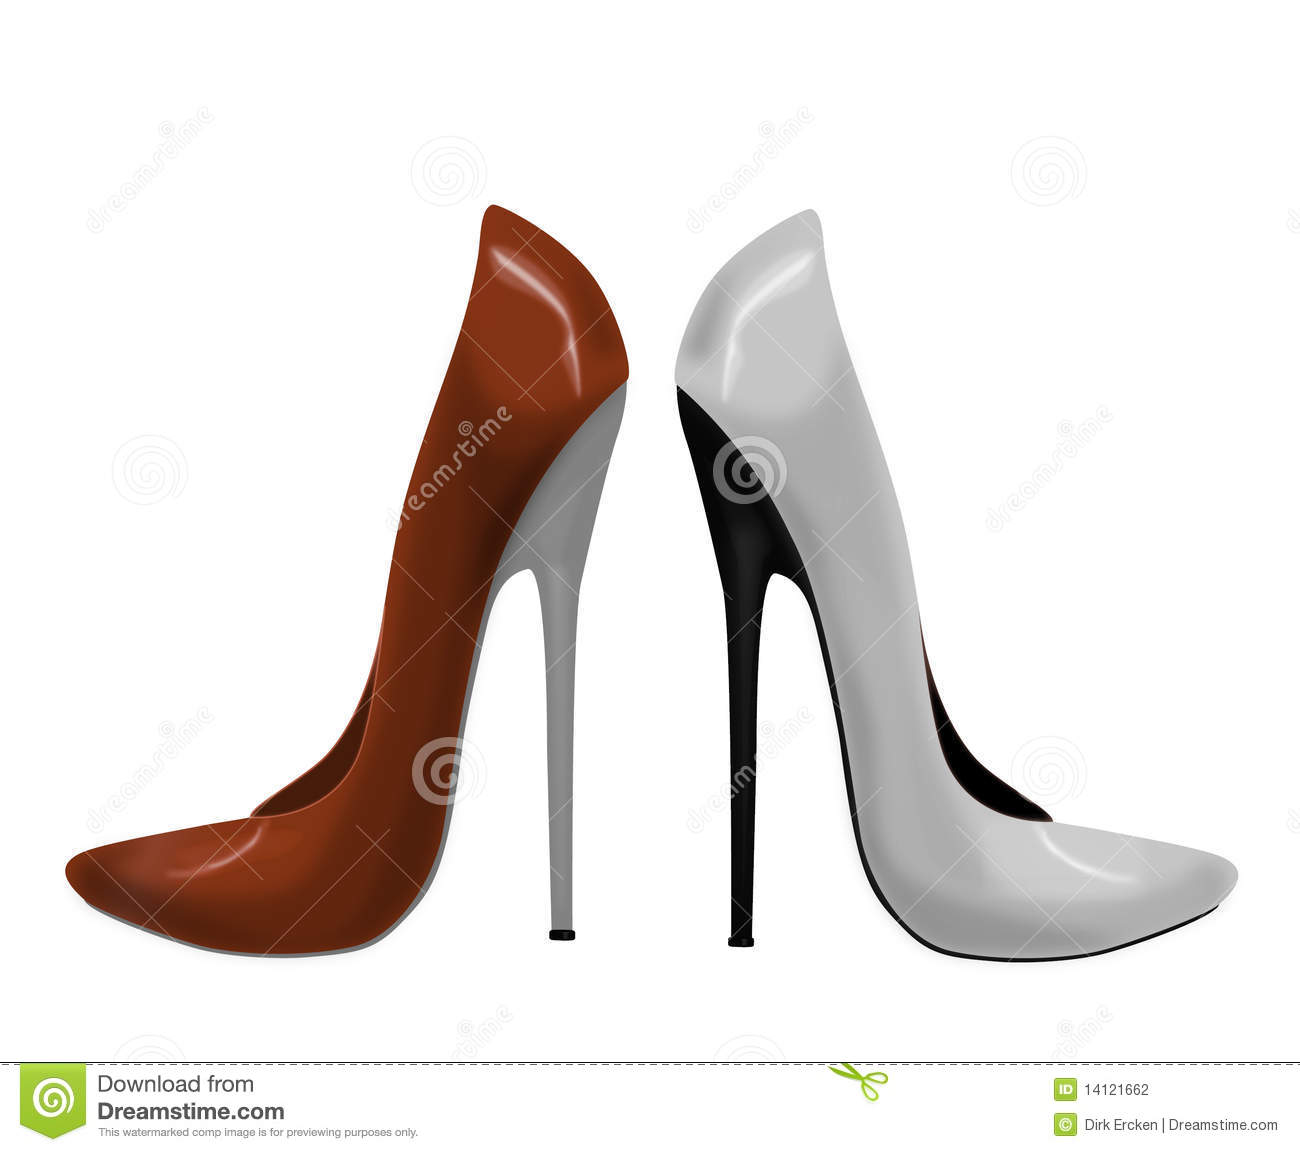 550589b665e1d Red and white shoes for sale must have for women stiletto high heels very  fancy and elegance last model beautiful lady fashion style shoe isolated